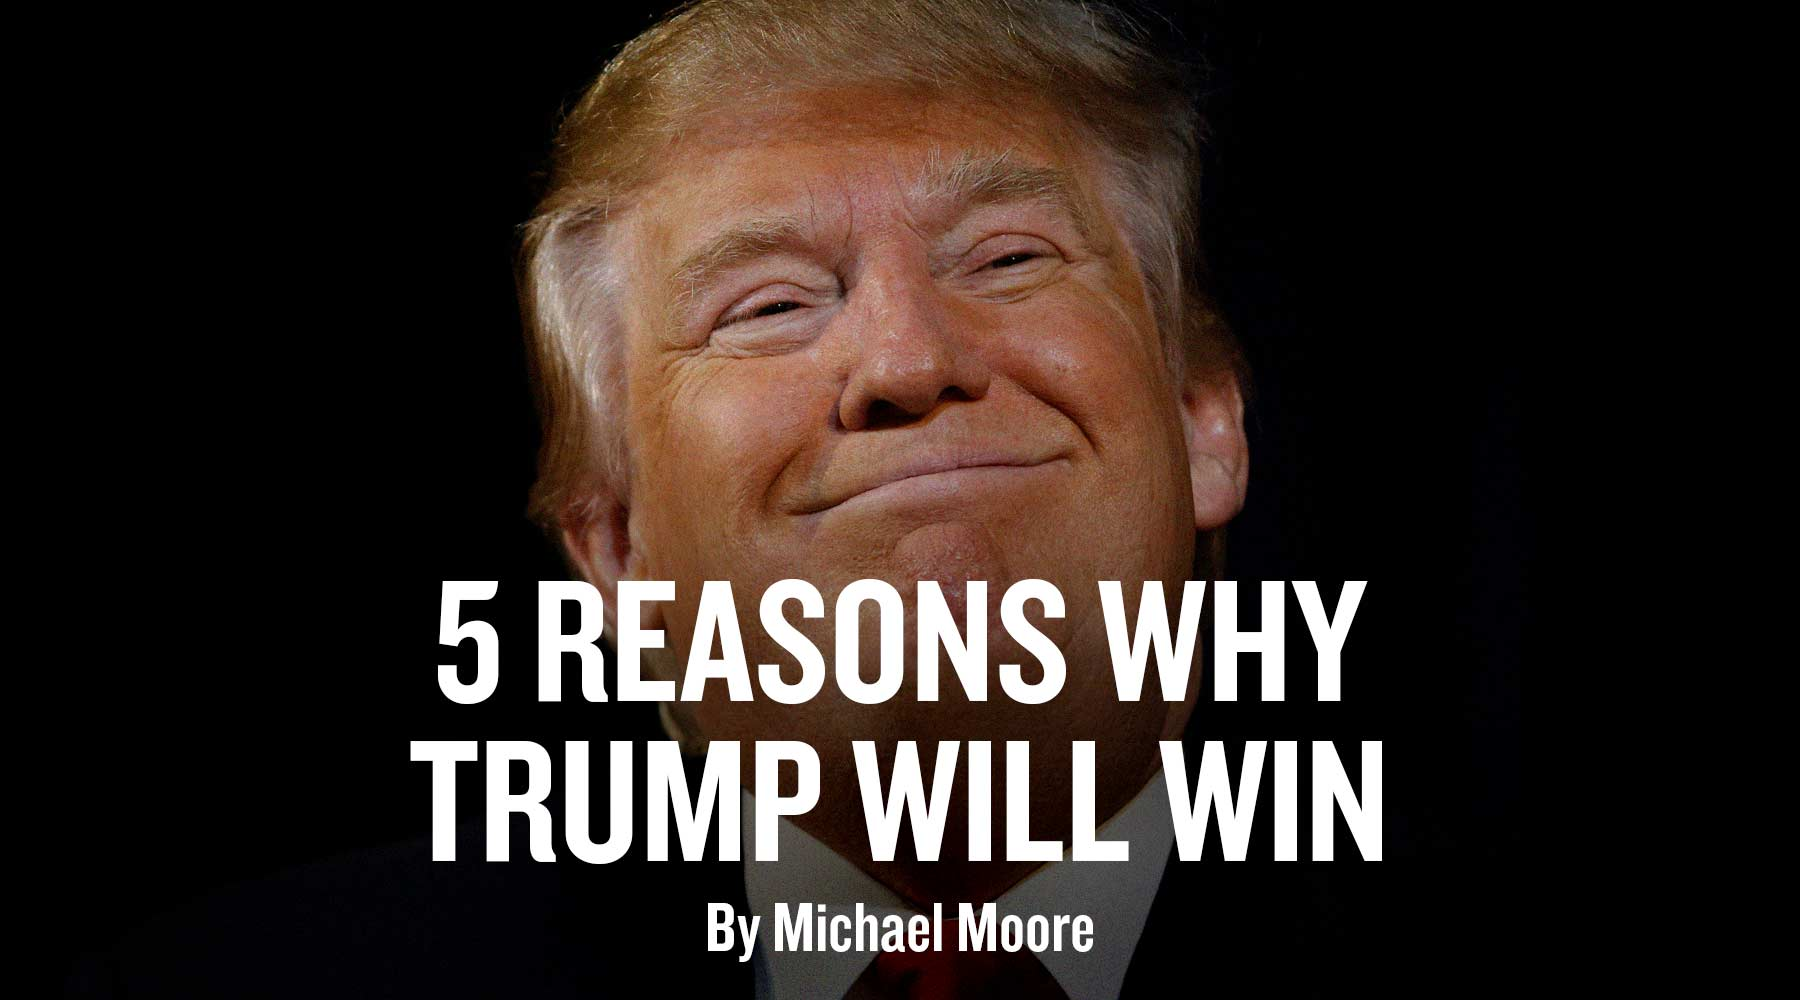 5 Reasons Why Trump Will Win  c7df0f06d47